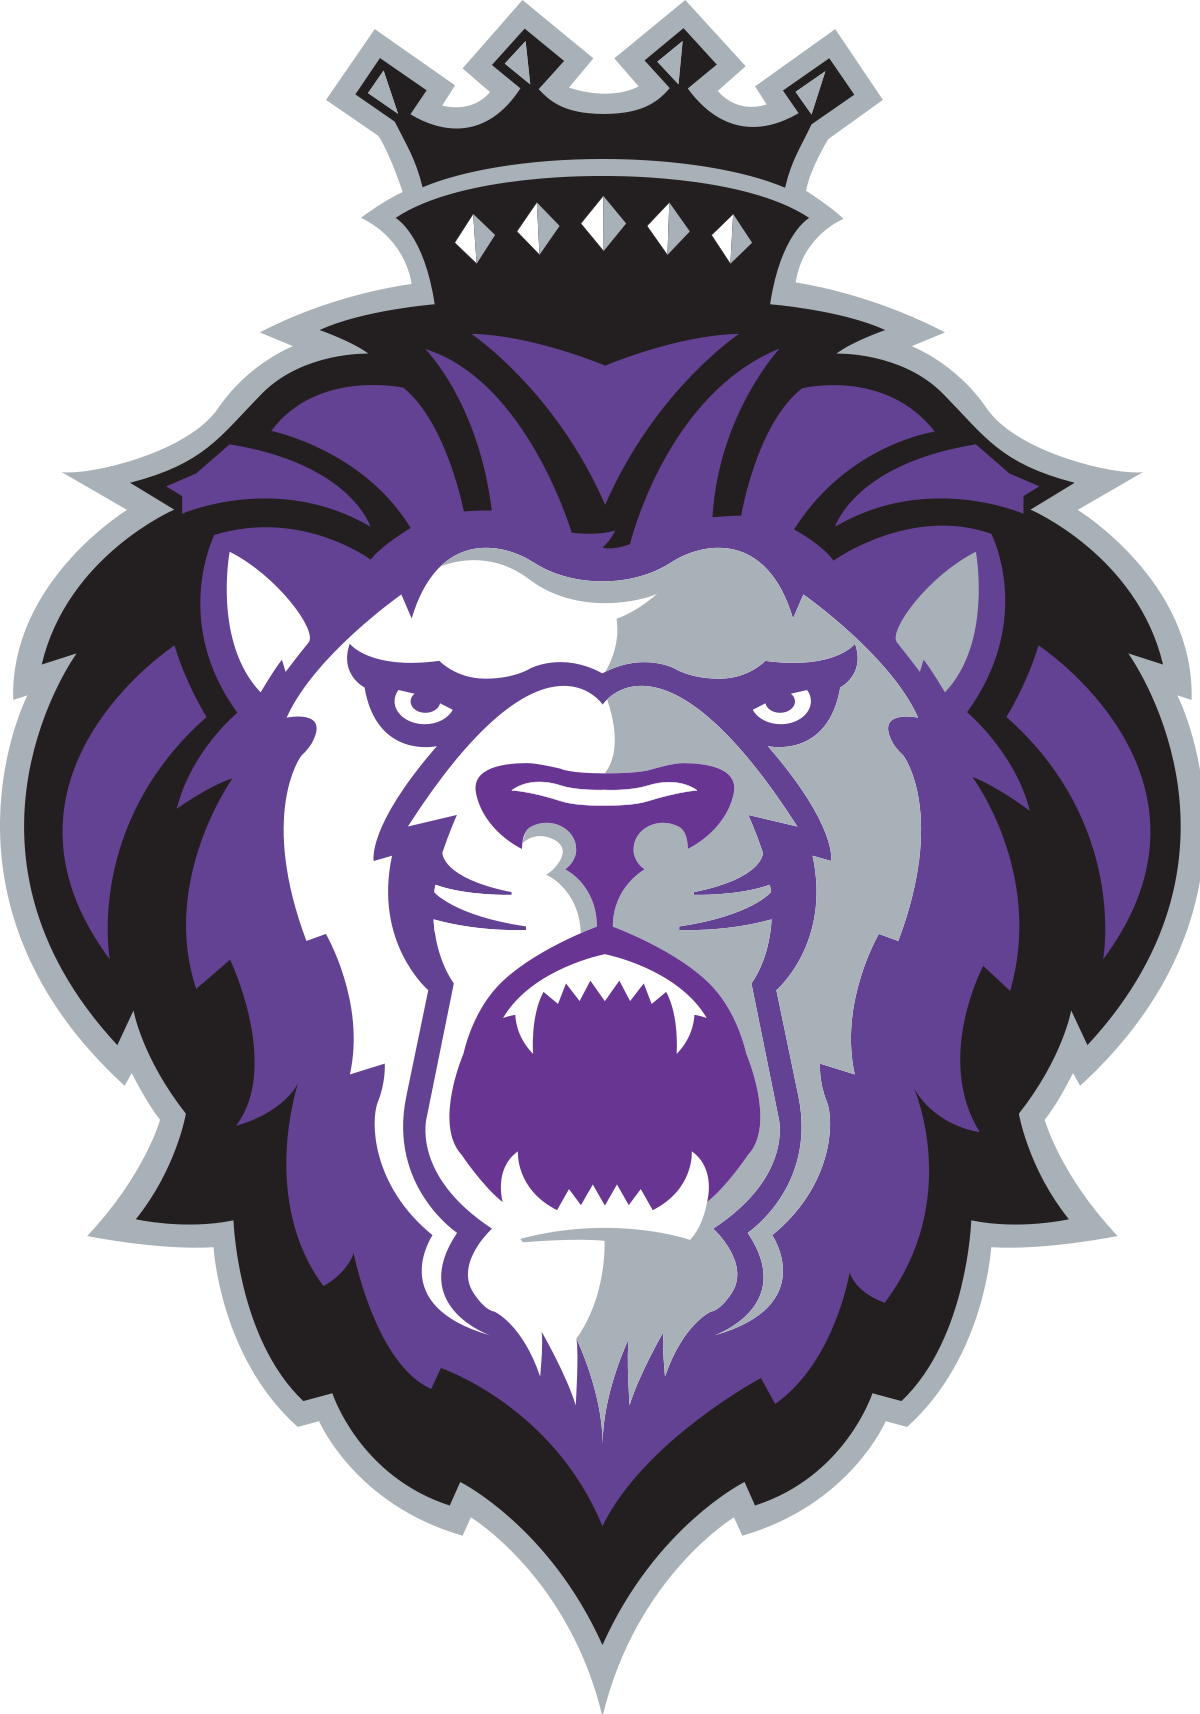 Red kings crown basketball clipart png library library Pin by zeit. on Sacramento Kings art | Pinterest | Sacramento kings png library library